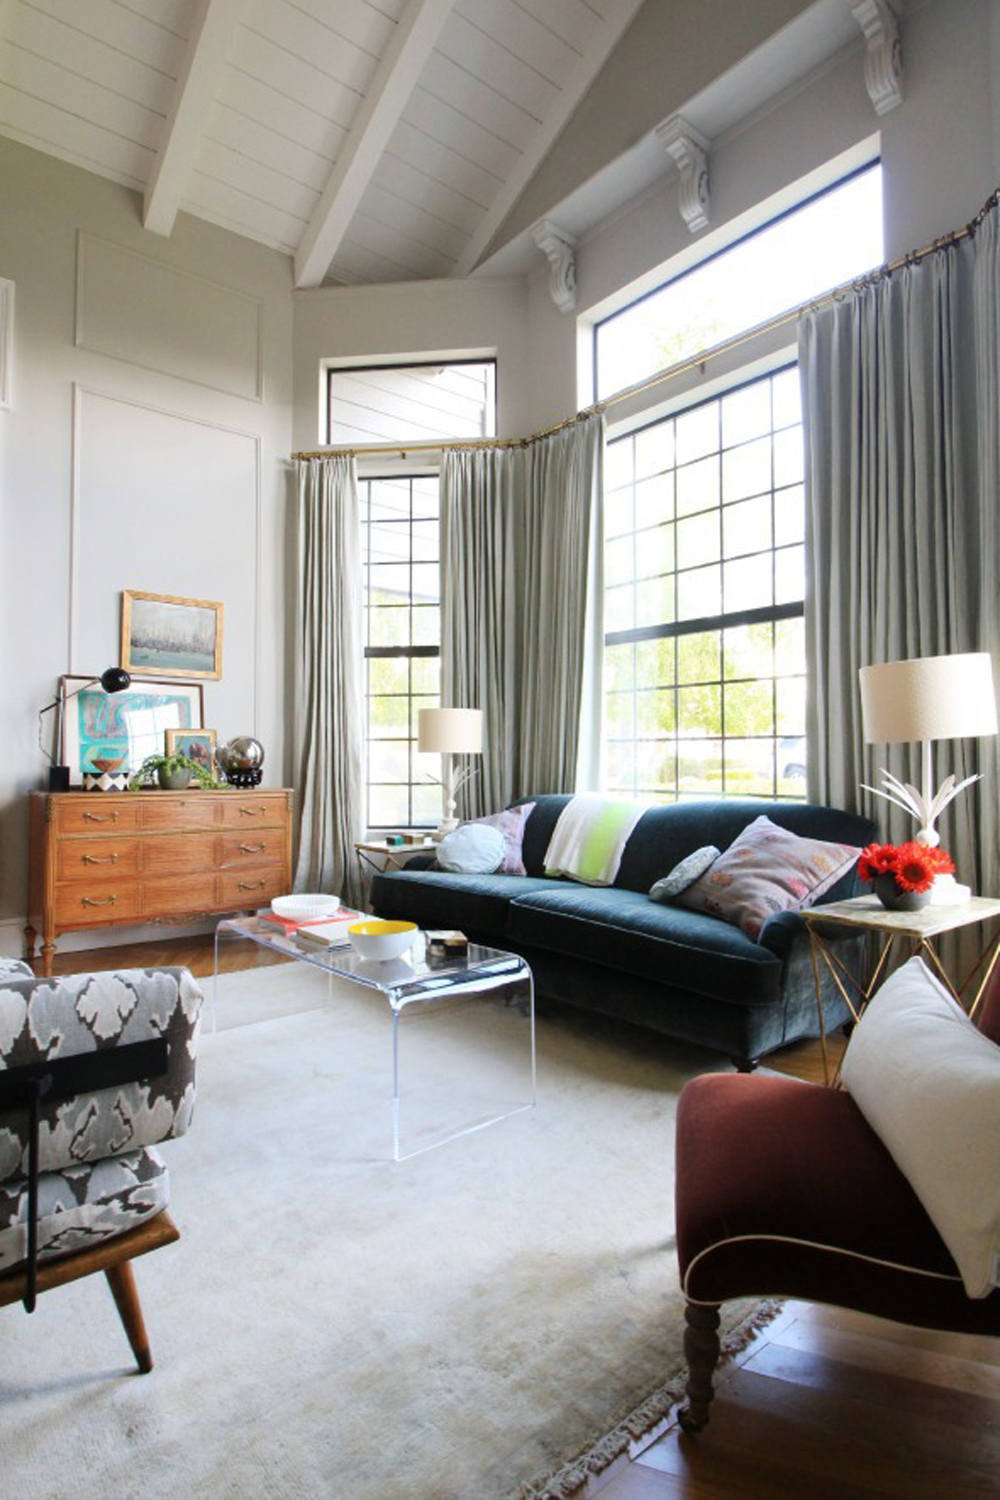 As For Choosing The Sofa Style, I Was Really Feeling This Room, The Modern  And Vintage Mix, And Was Inspired To Go With A More Traditional Sofa And  Maybe ...